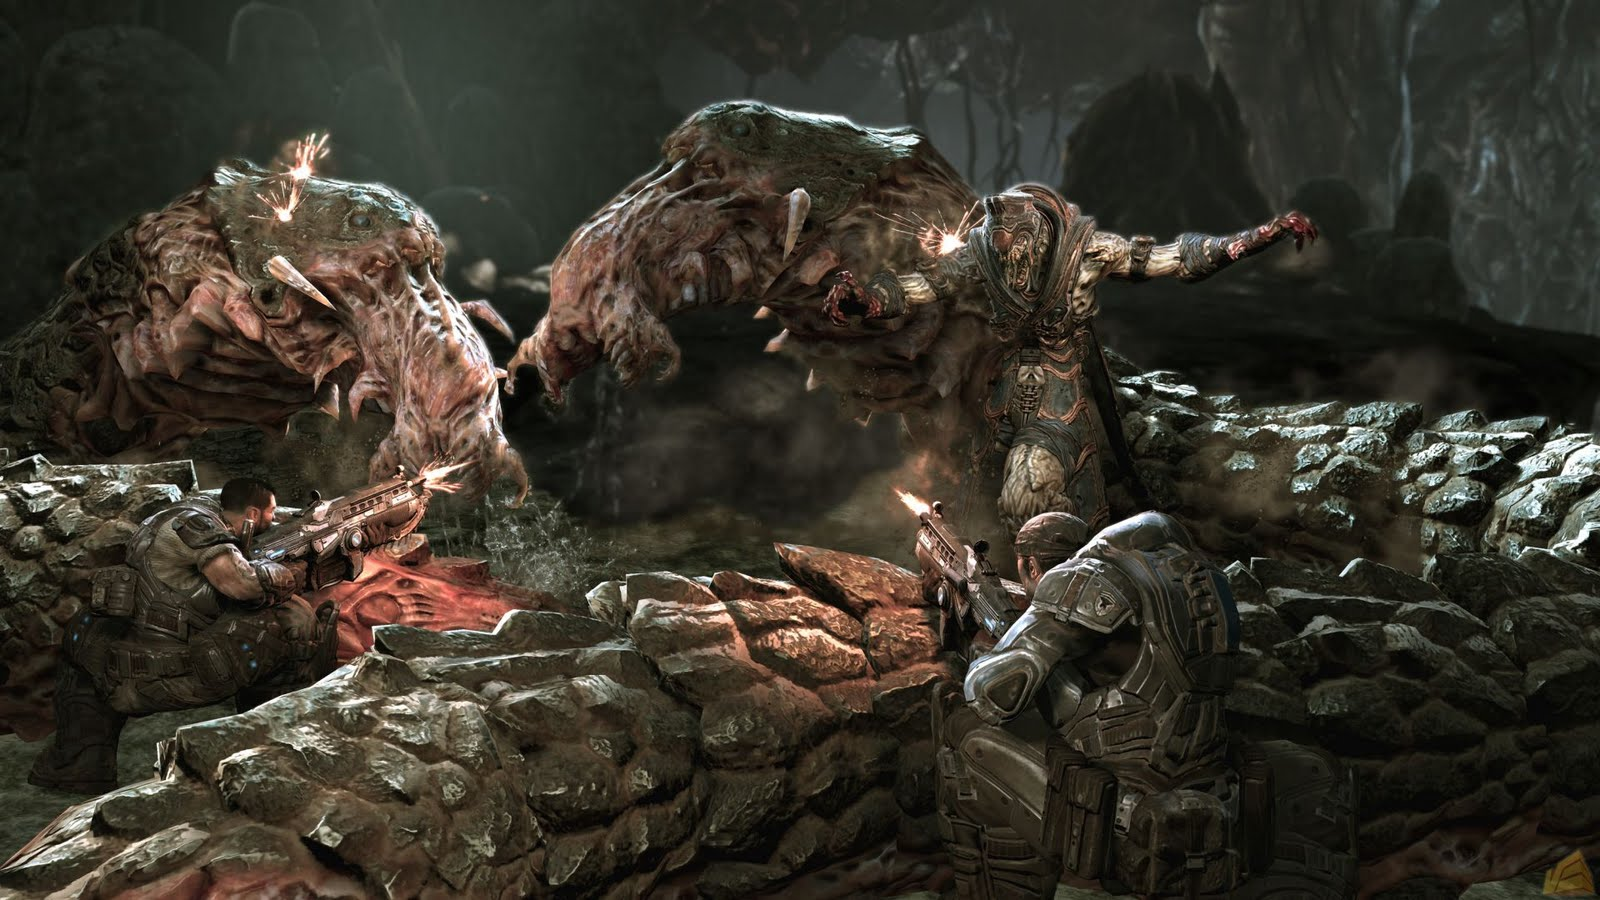 Gears of War HD & Widescreen Wallpaper 0.709053058421313